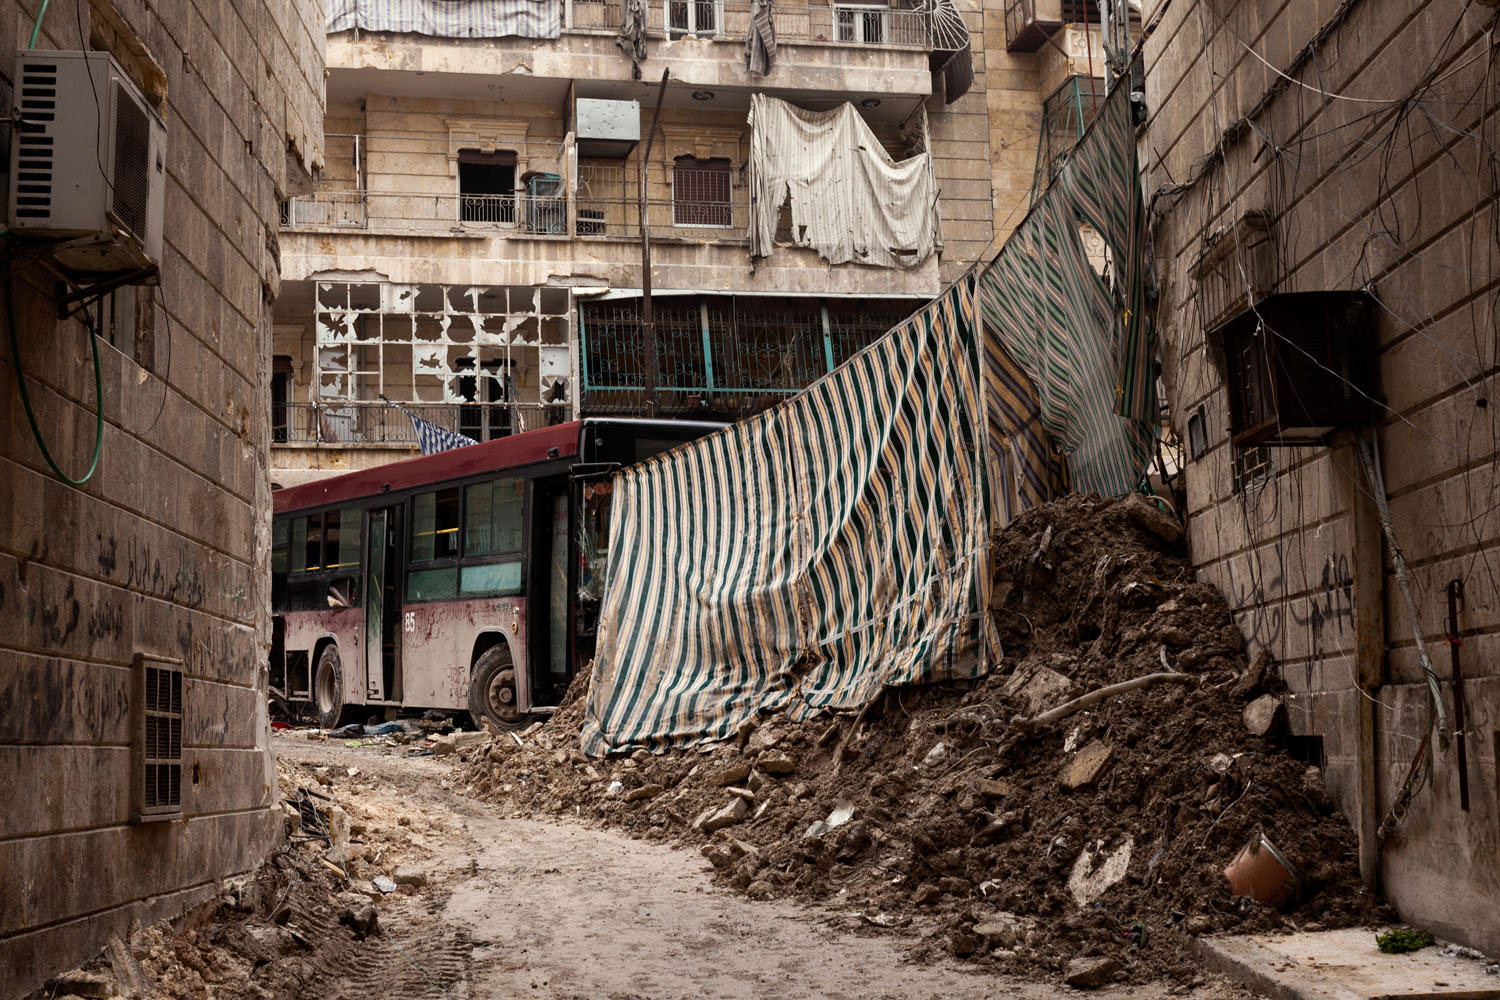 """""""Aleppo's sheets serve the same purpose: they protect lives,"""" the photographer, Franco Pagetti, says. """"But you're always aware how fragile they are."""